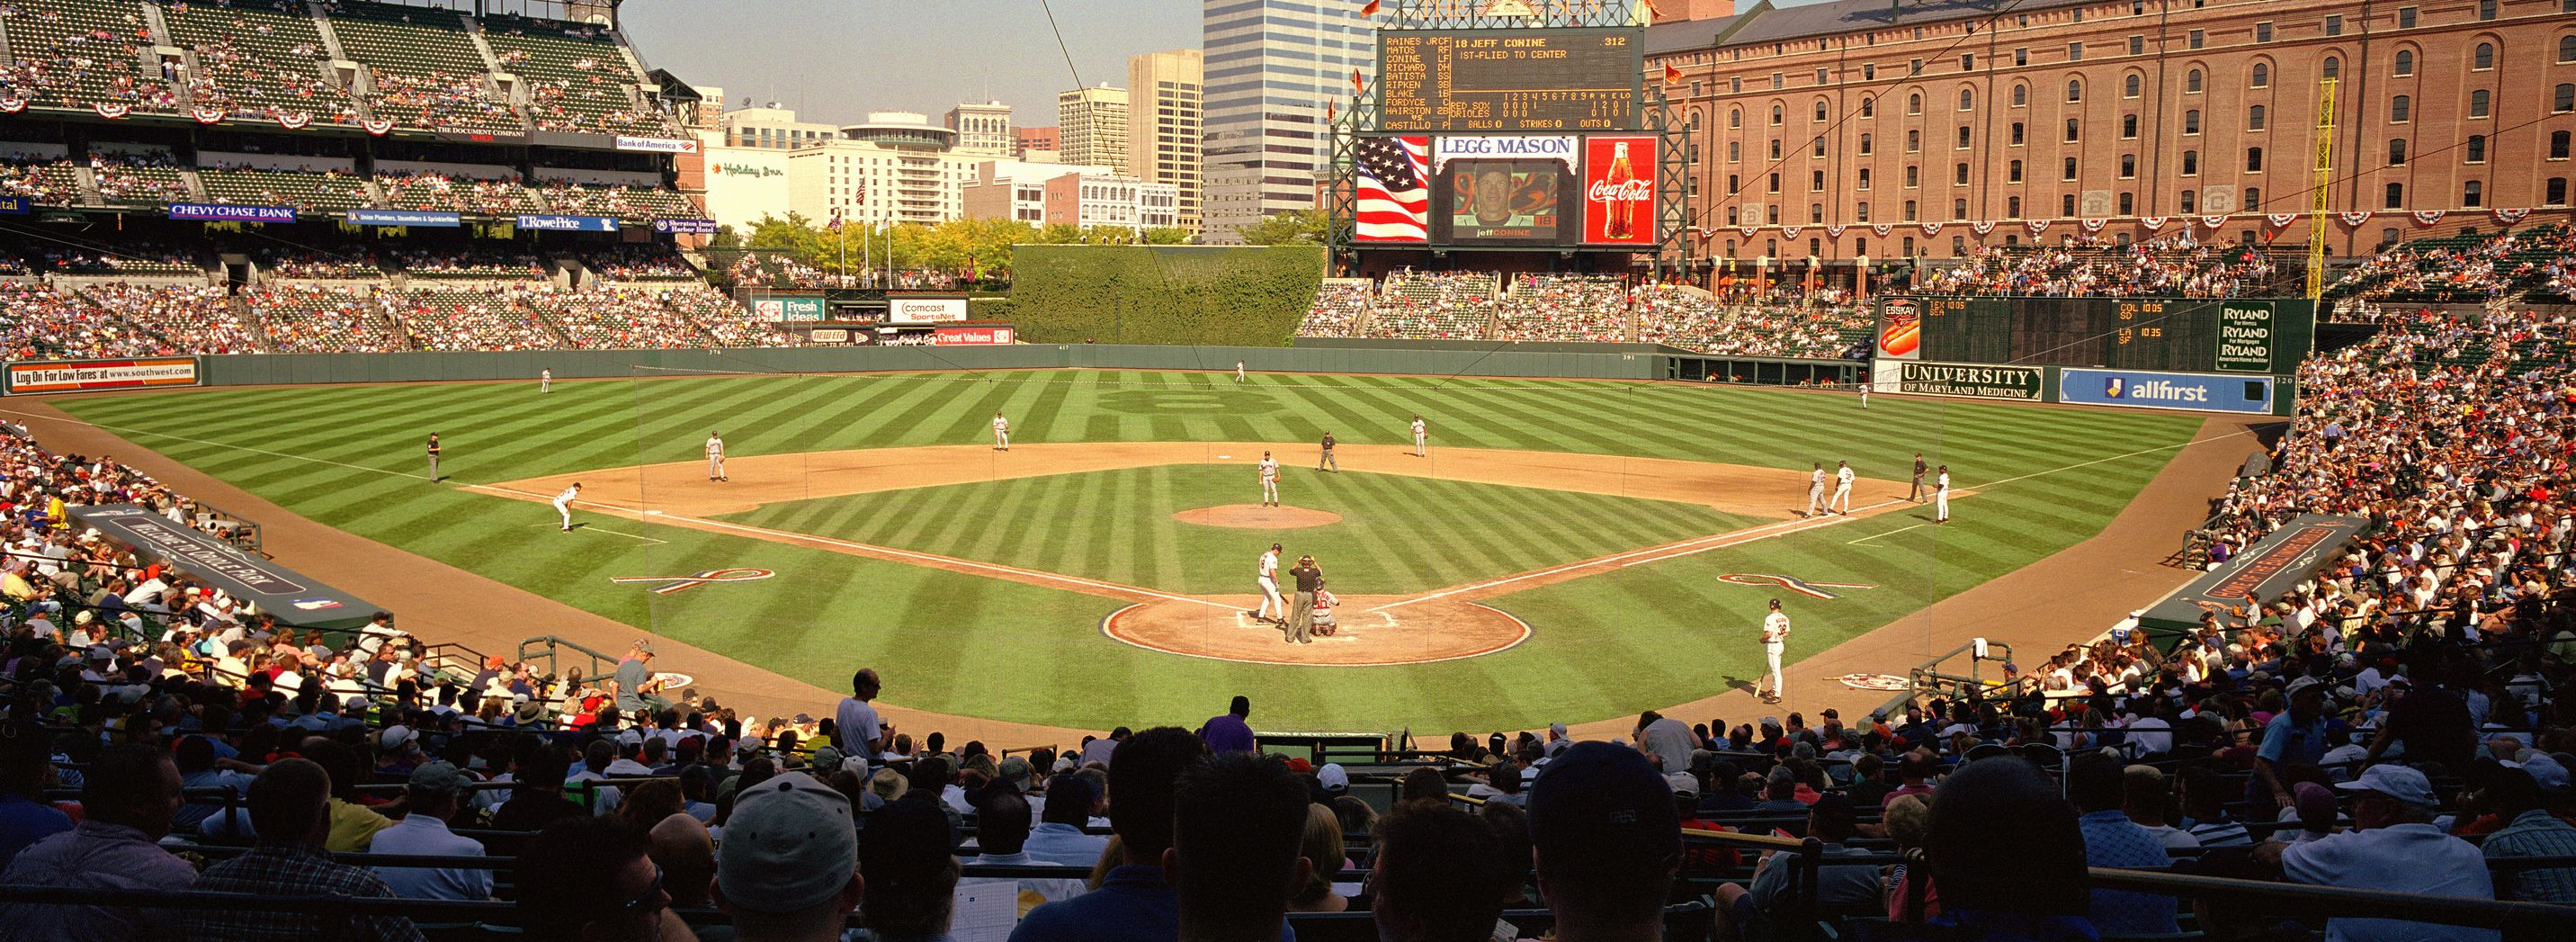 25 fun facts about Oriole Park at Camden Yards - wbaltv.com